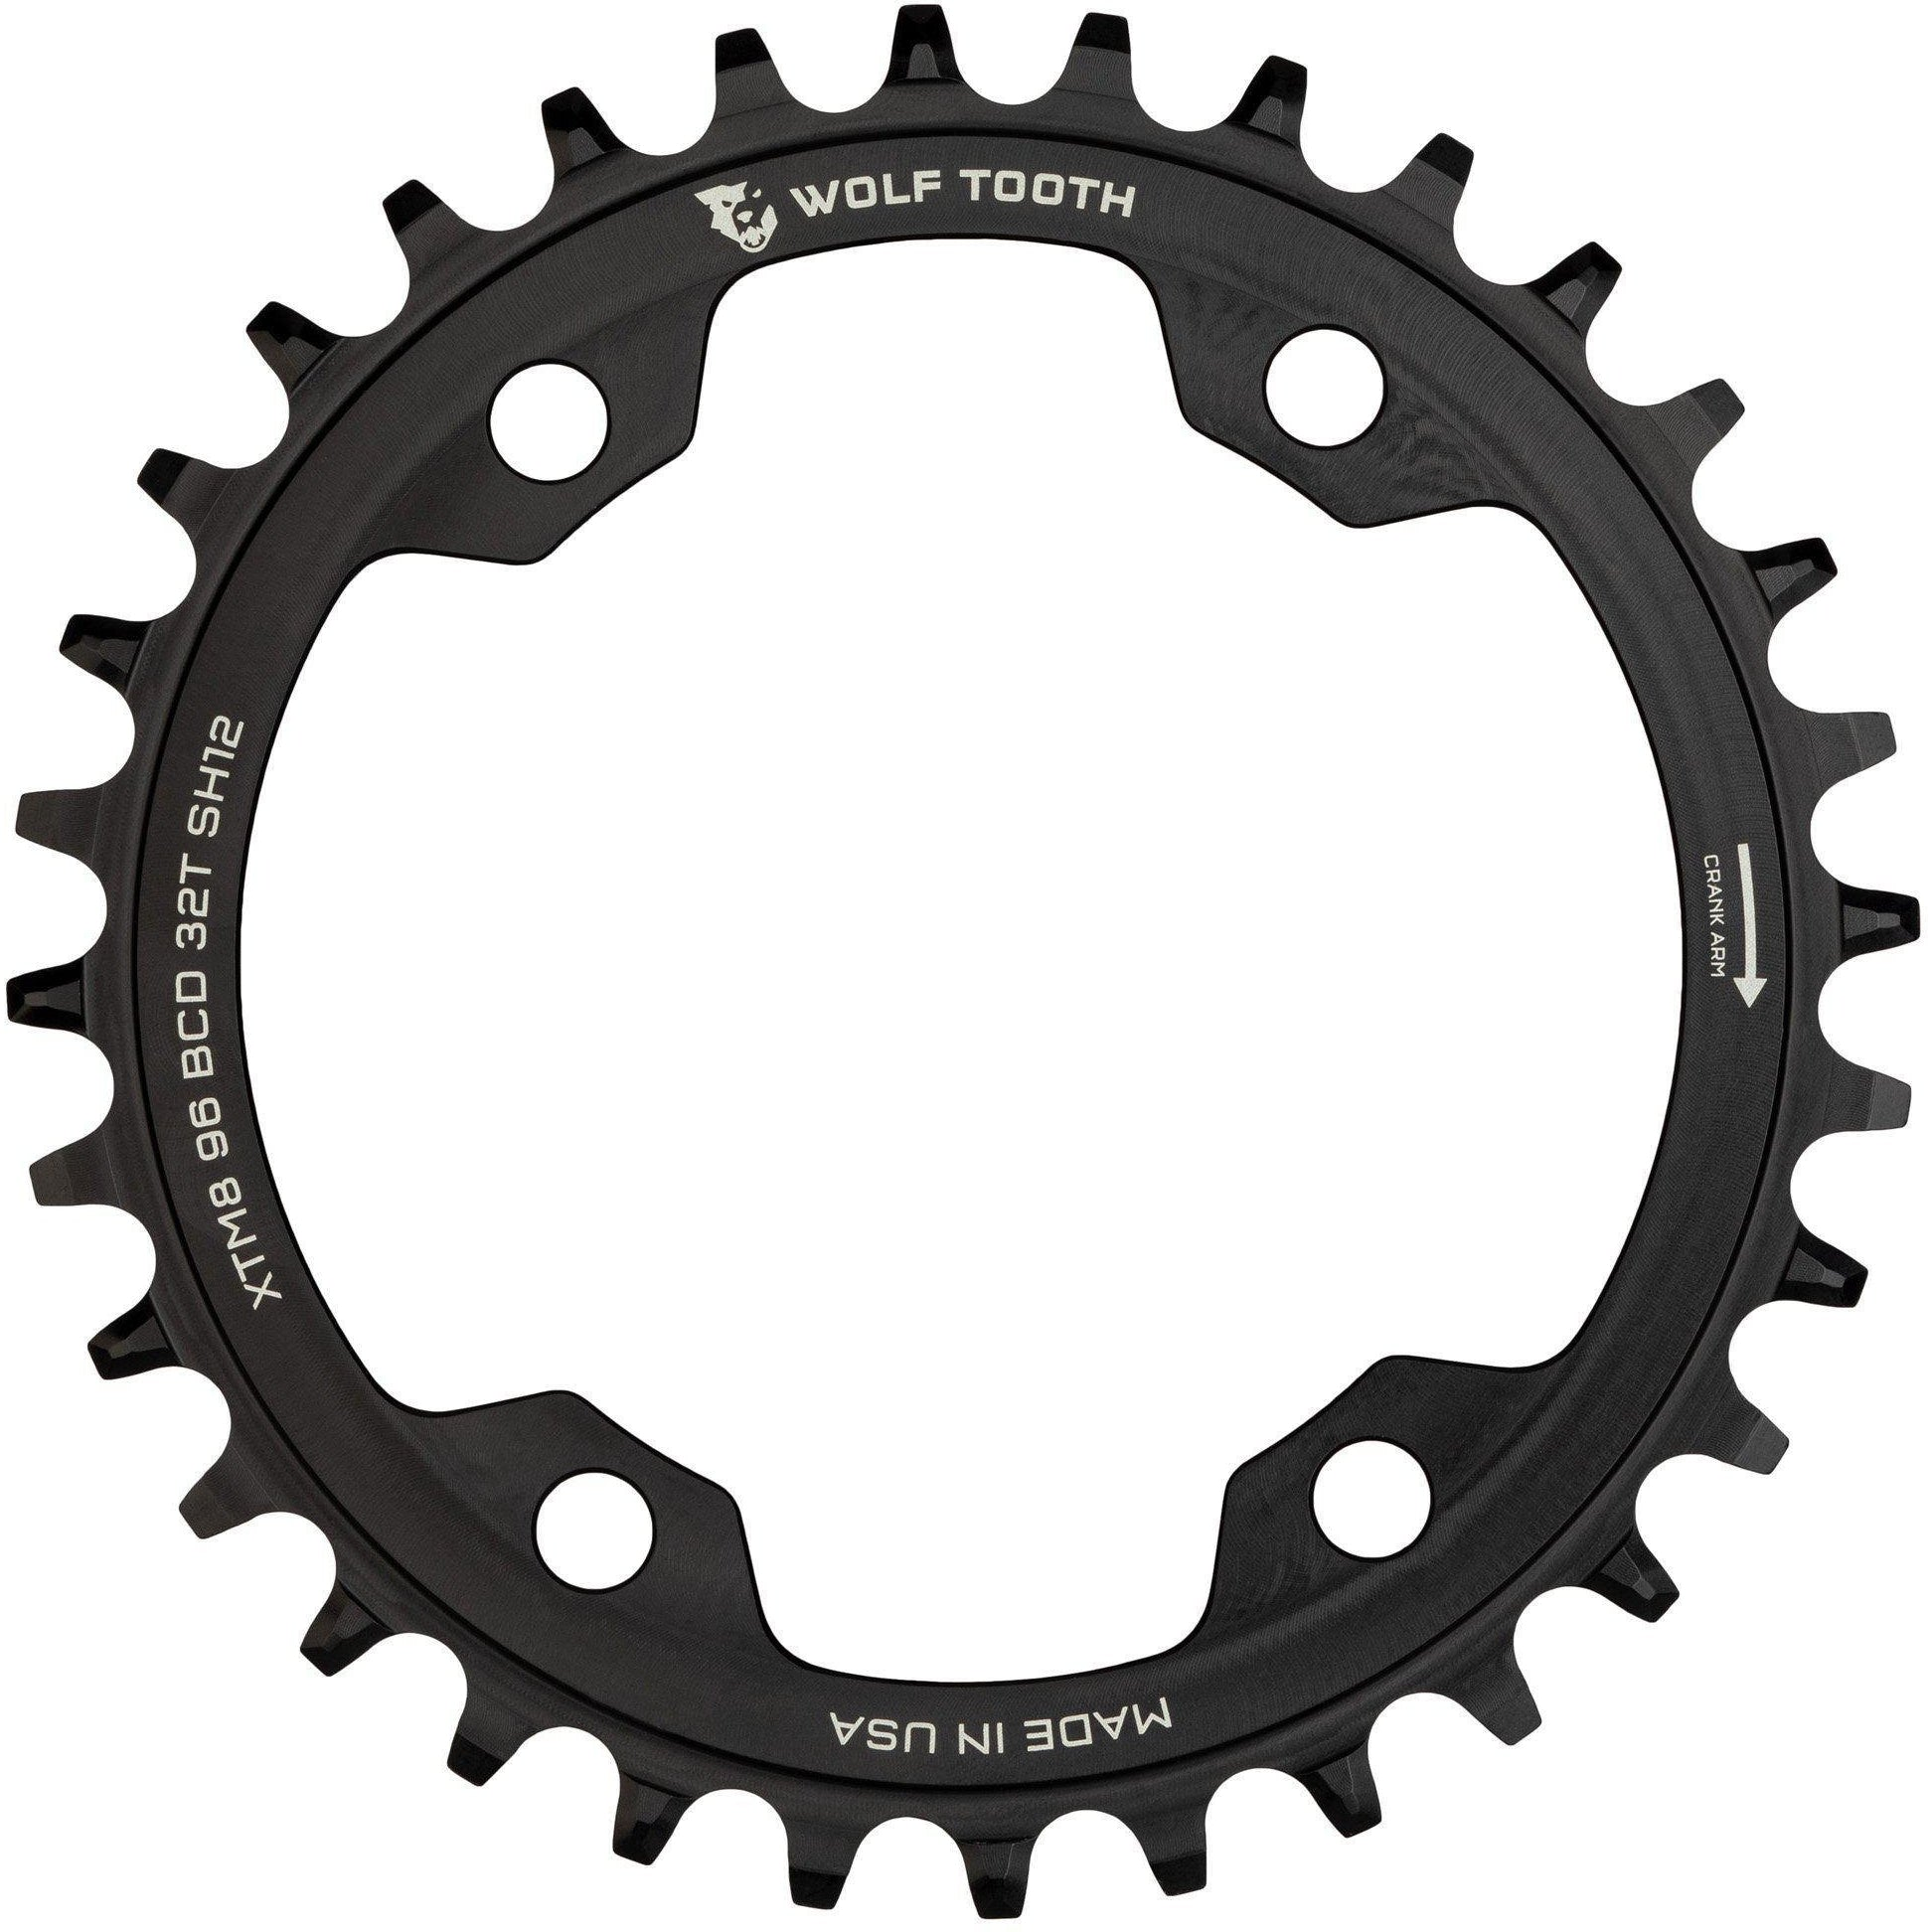 Wolf Tooth-Wolf Tooth 96 BCD Chainring for XT M8000 Shimano 12 speed-30T-Black-WTXTM8K9630SH12-saddleback-elite-performance-cycling